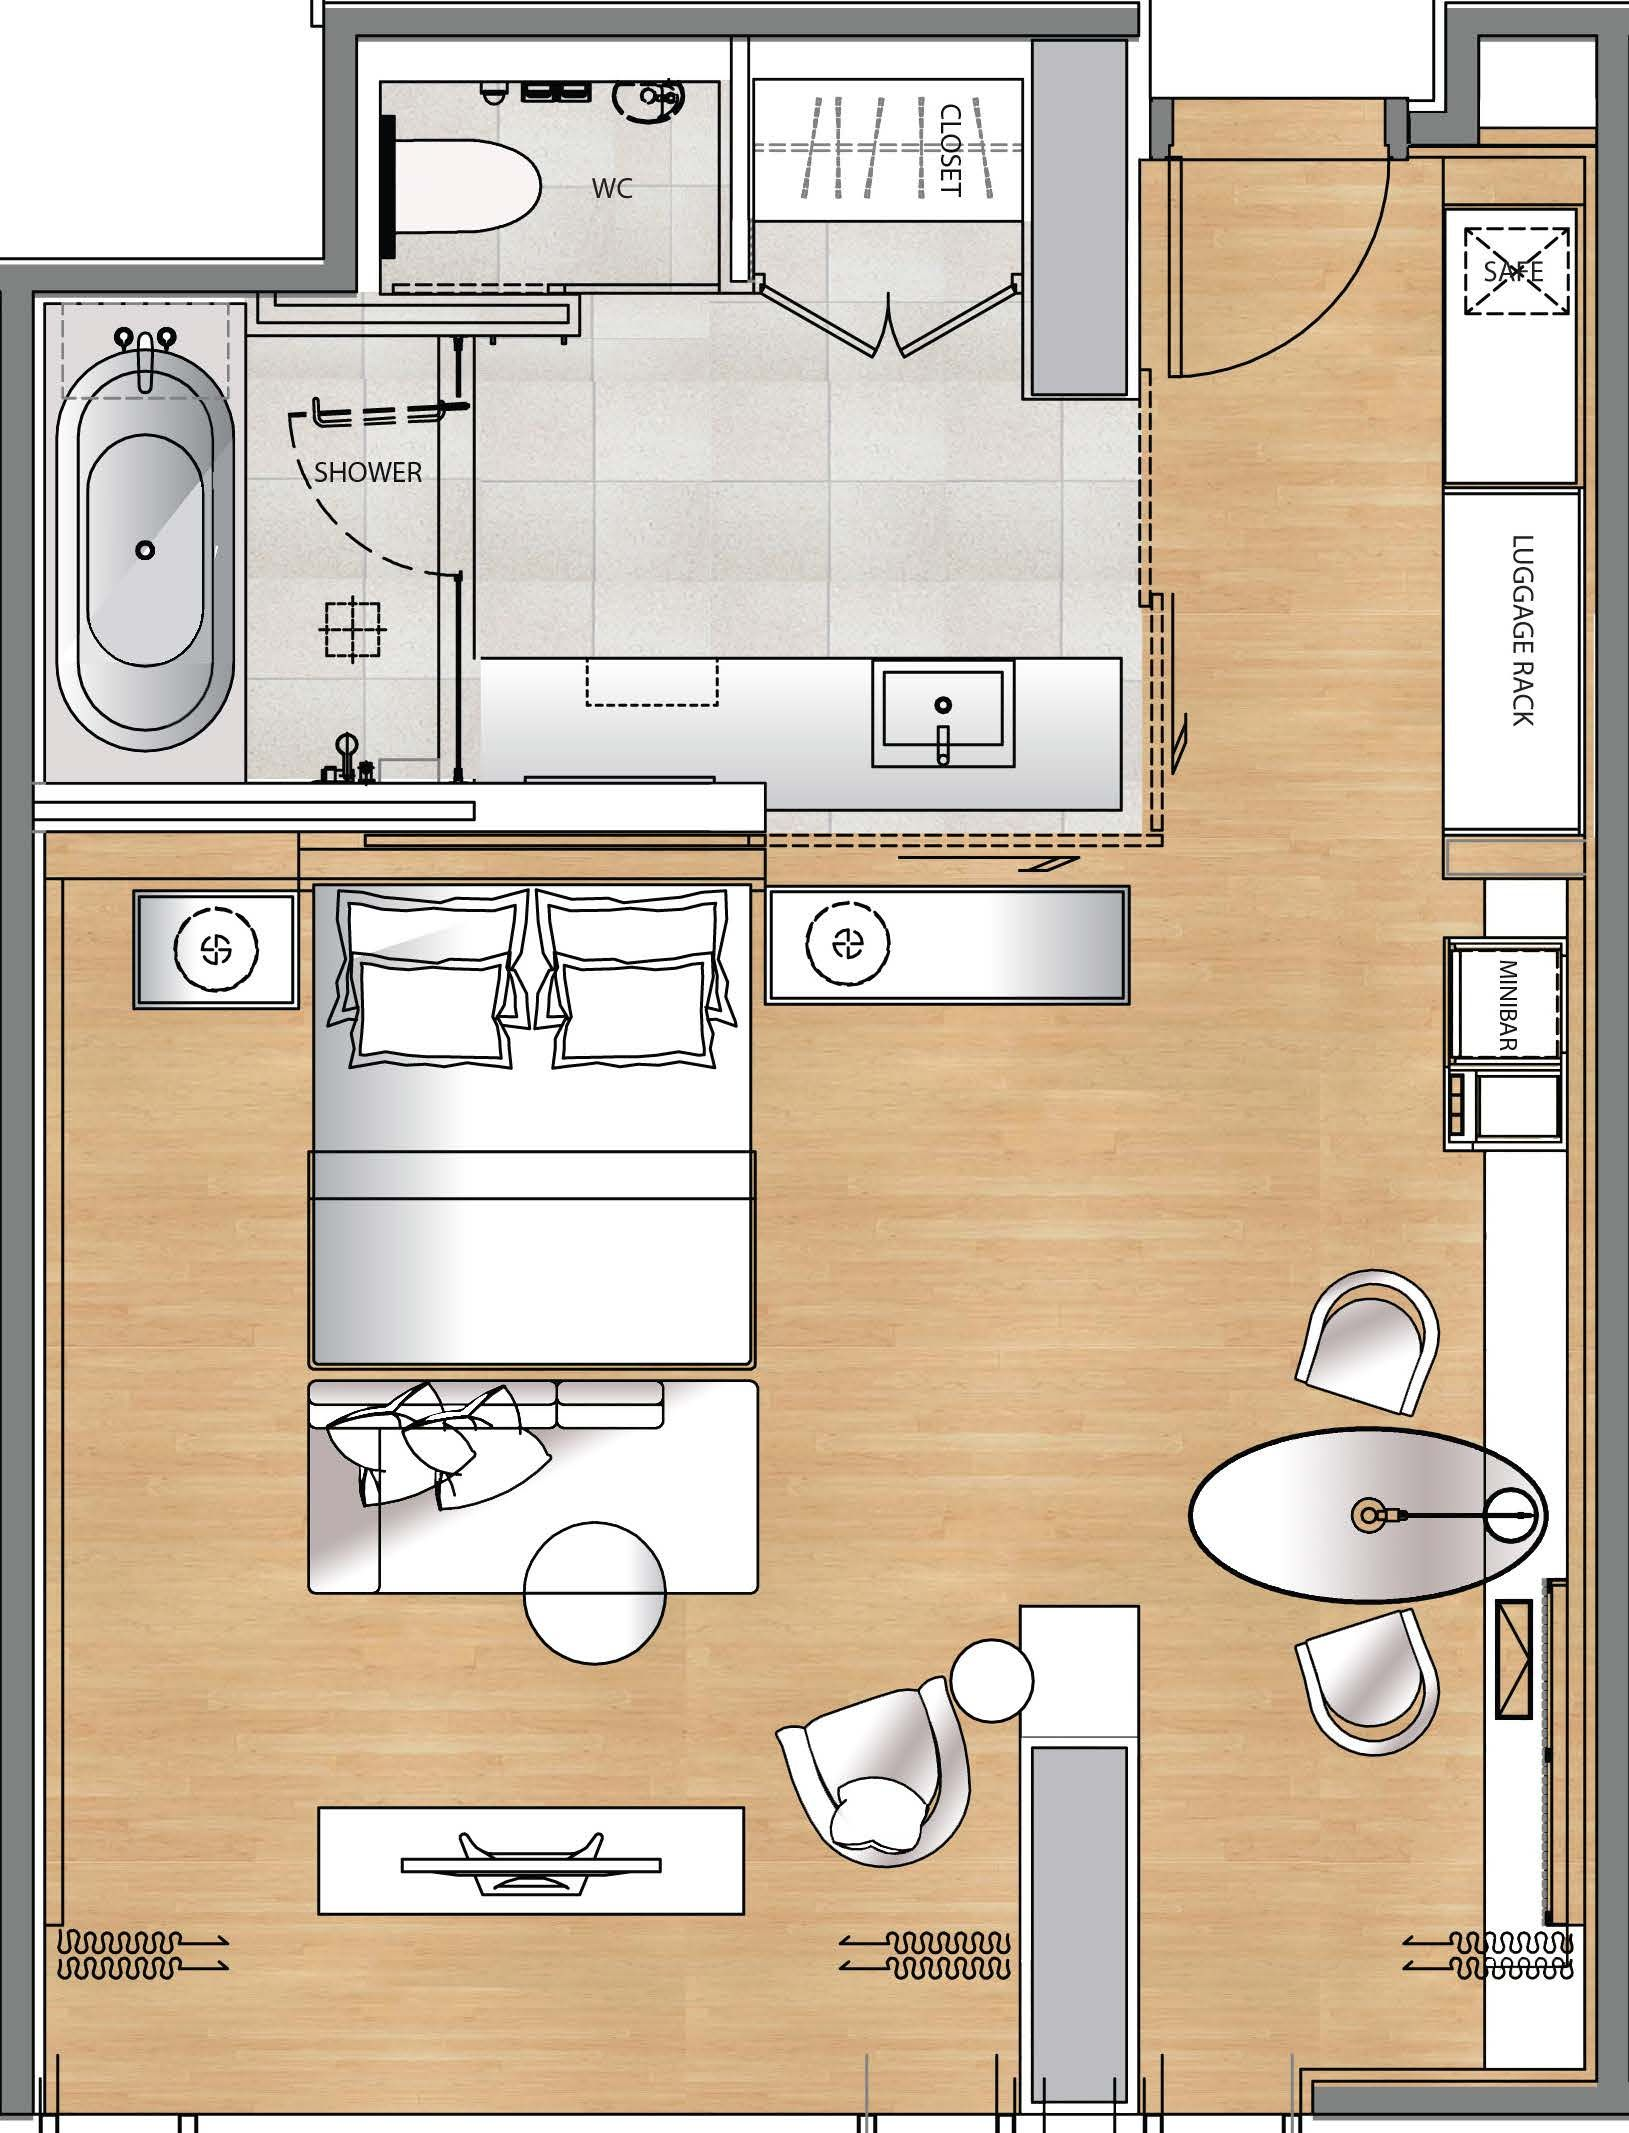 Hotel gym floor plan google search hotel rooms for Room design layout